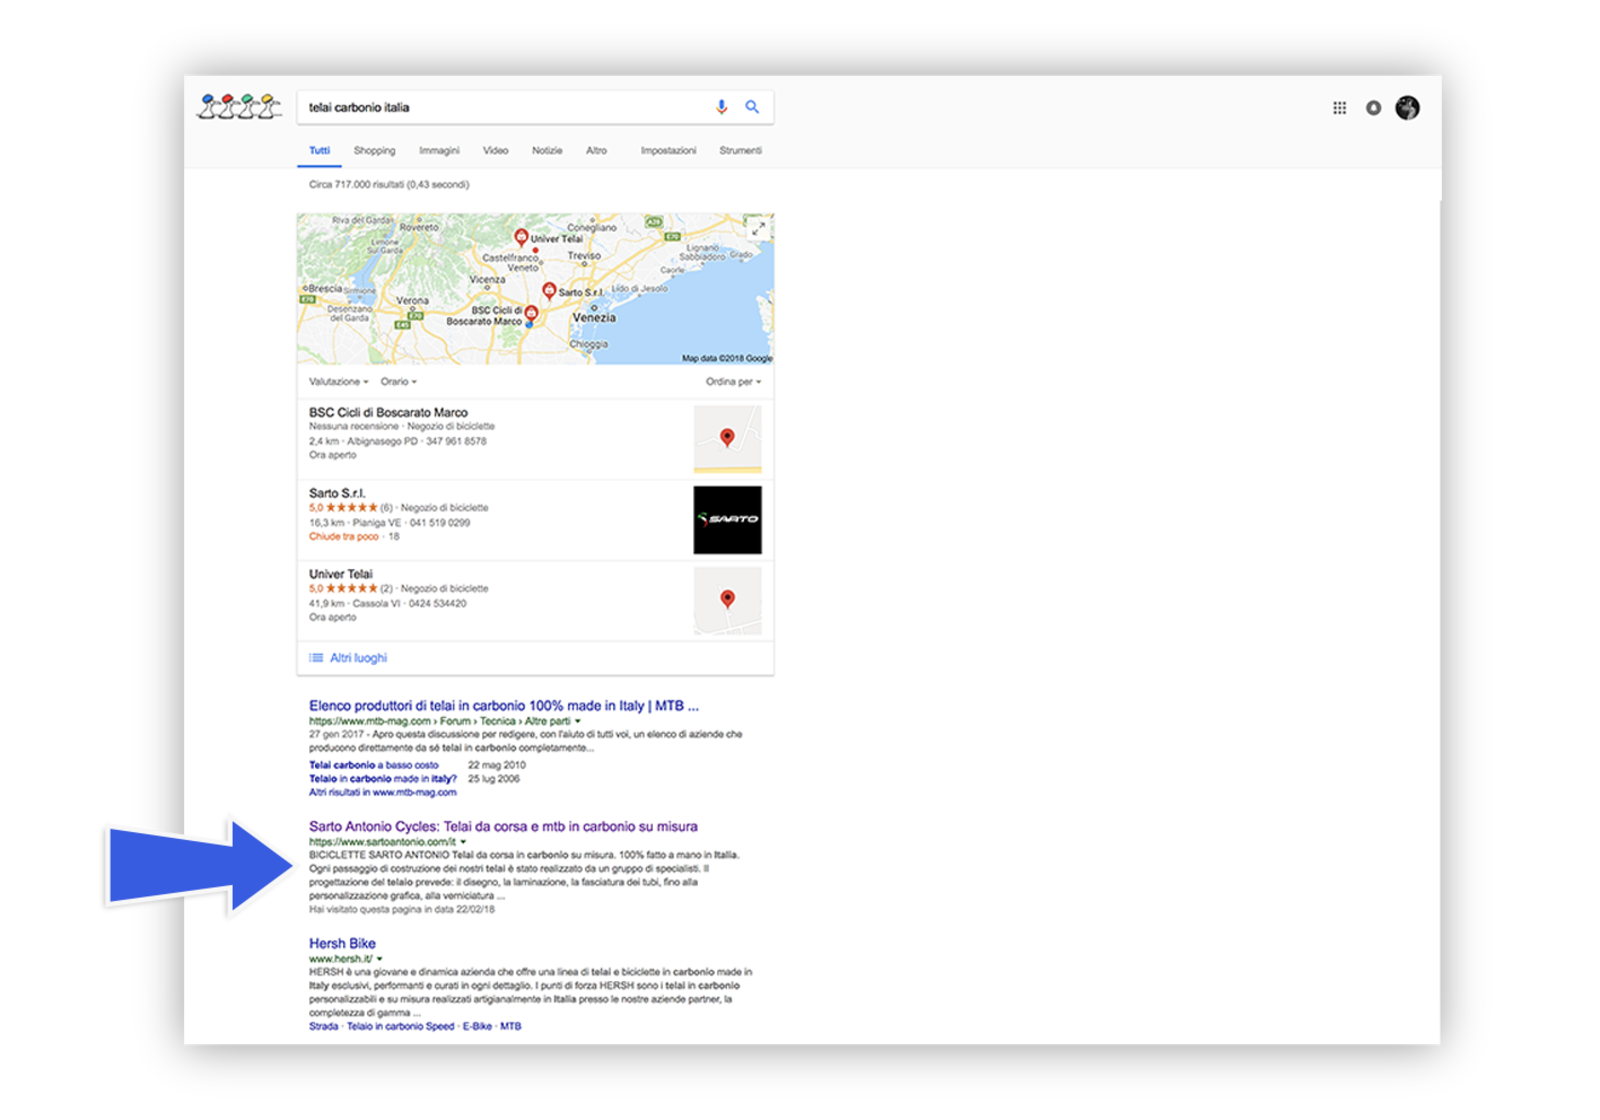 Screenshot of the positioning of the Sarto site in Google searches